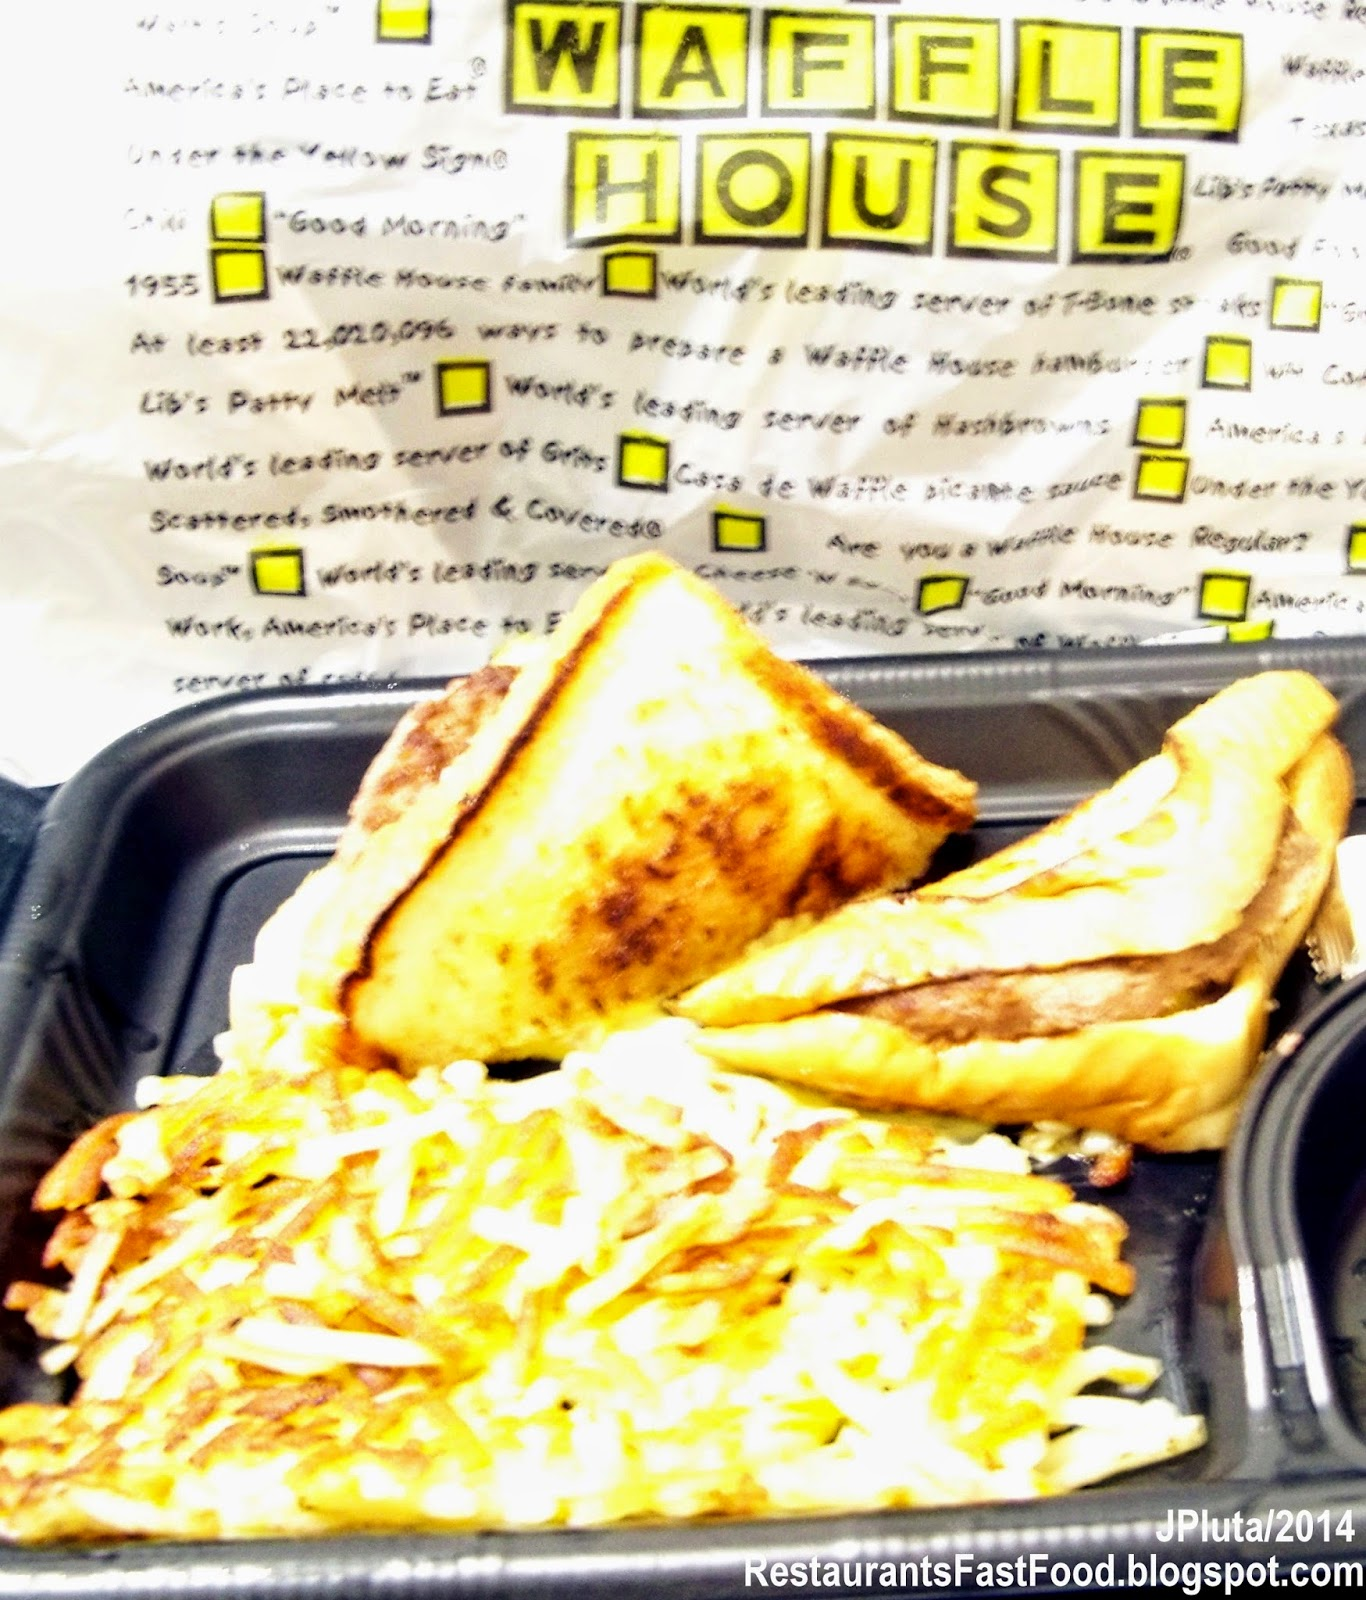 Waffle House Diner Restaurant To Go Hamburger Plate Patty Melt Sandwich WAFFLE HOUSE Forest Park Georgia